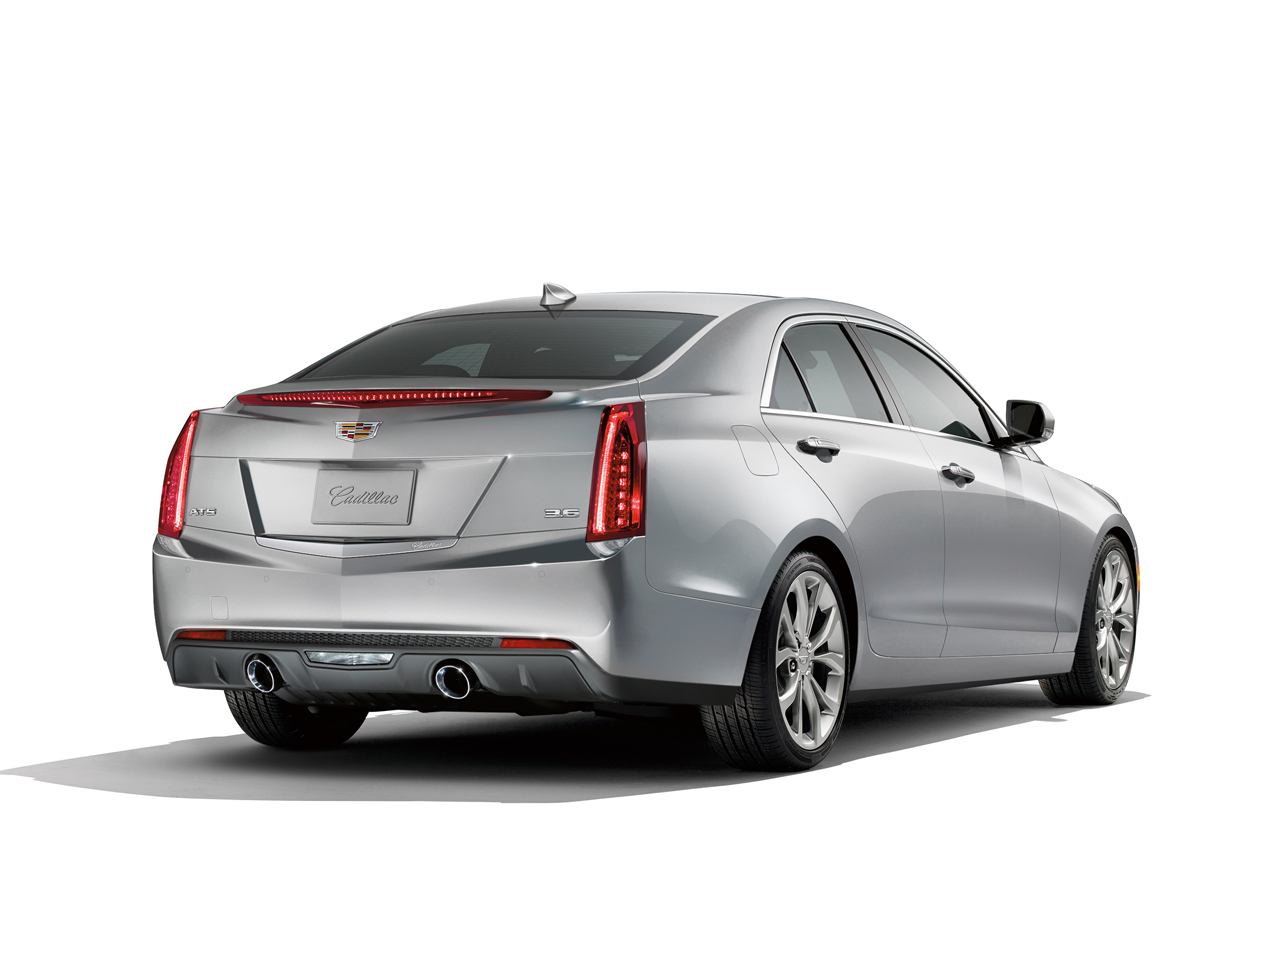 Cadillac ATS photo 123849